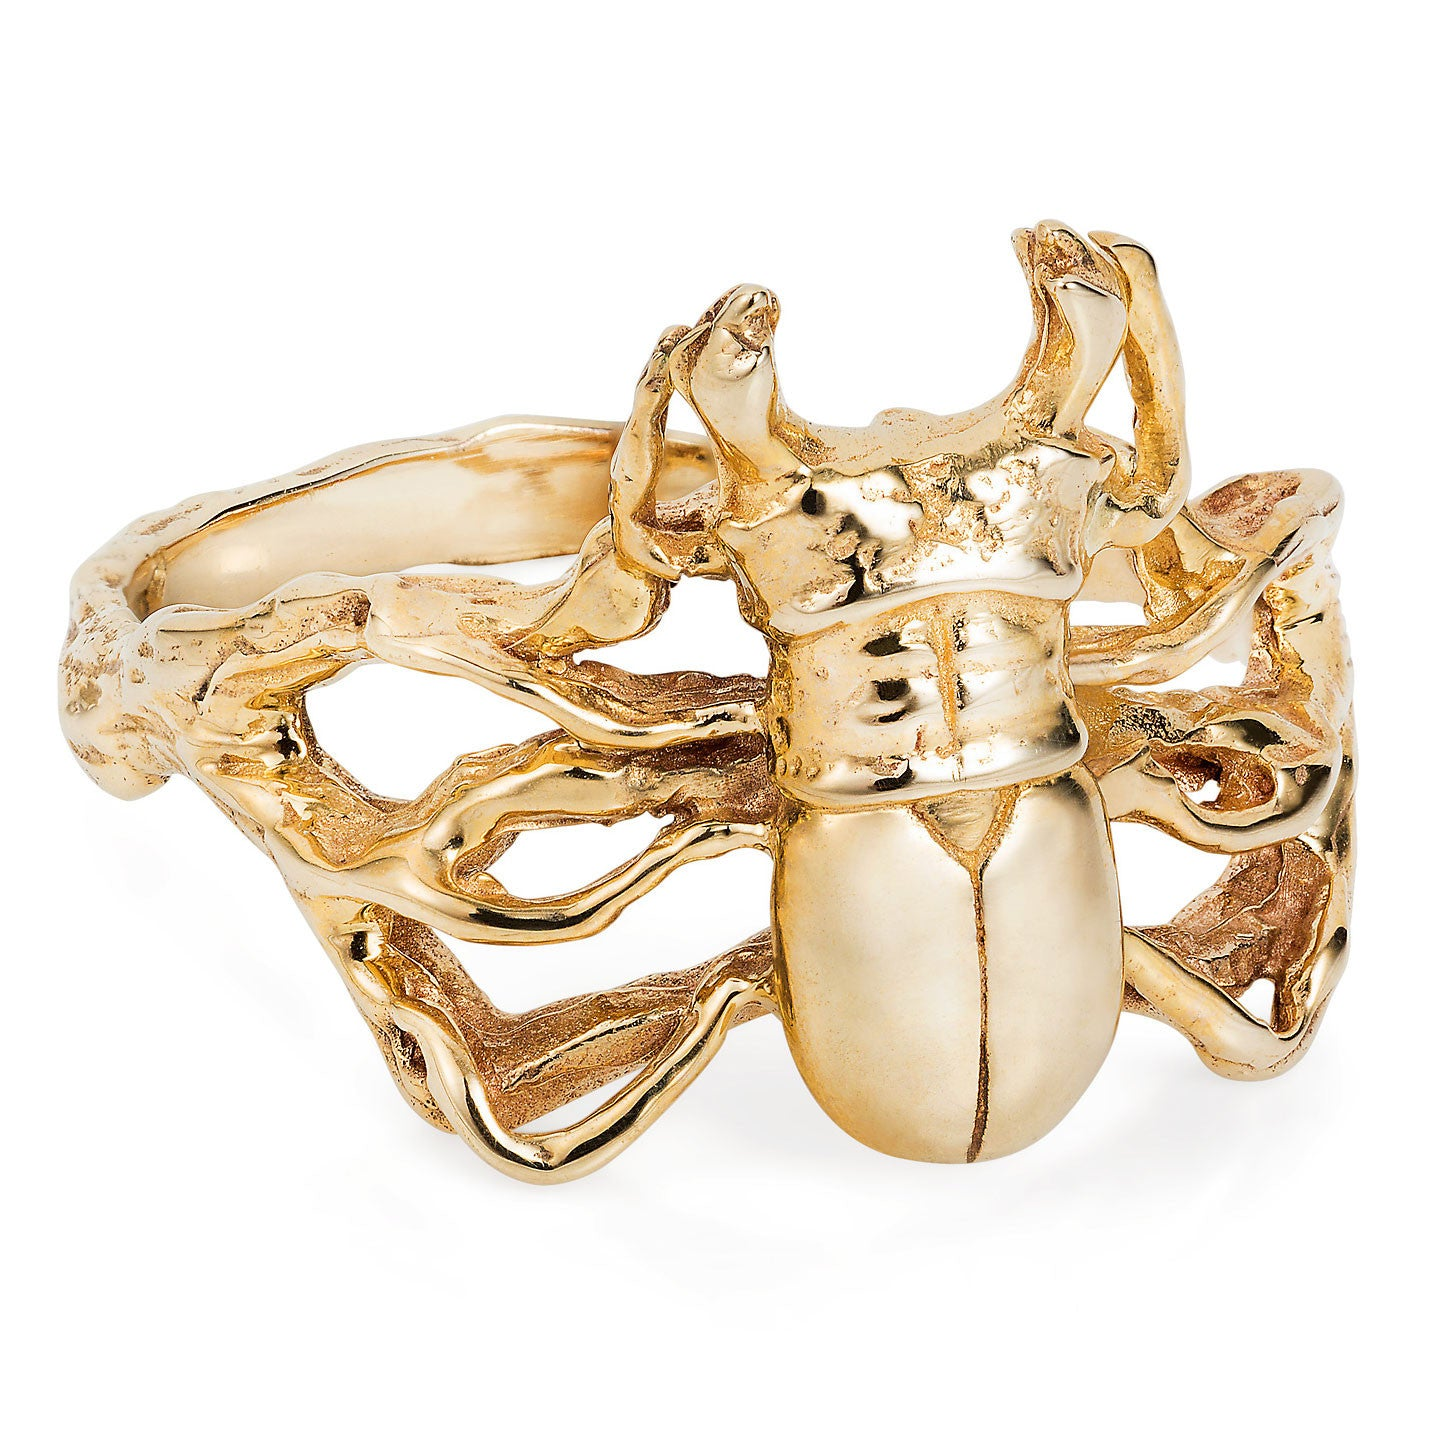 9ct Gold Little Stag Beetle Ring by Yasmin Everley